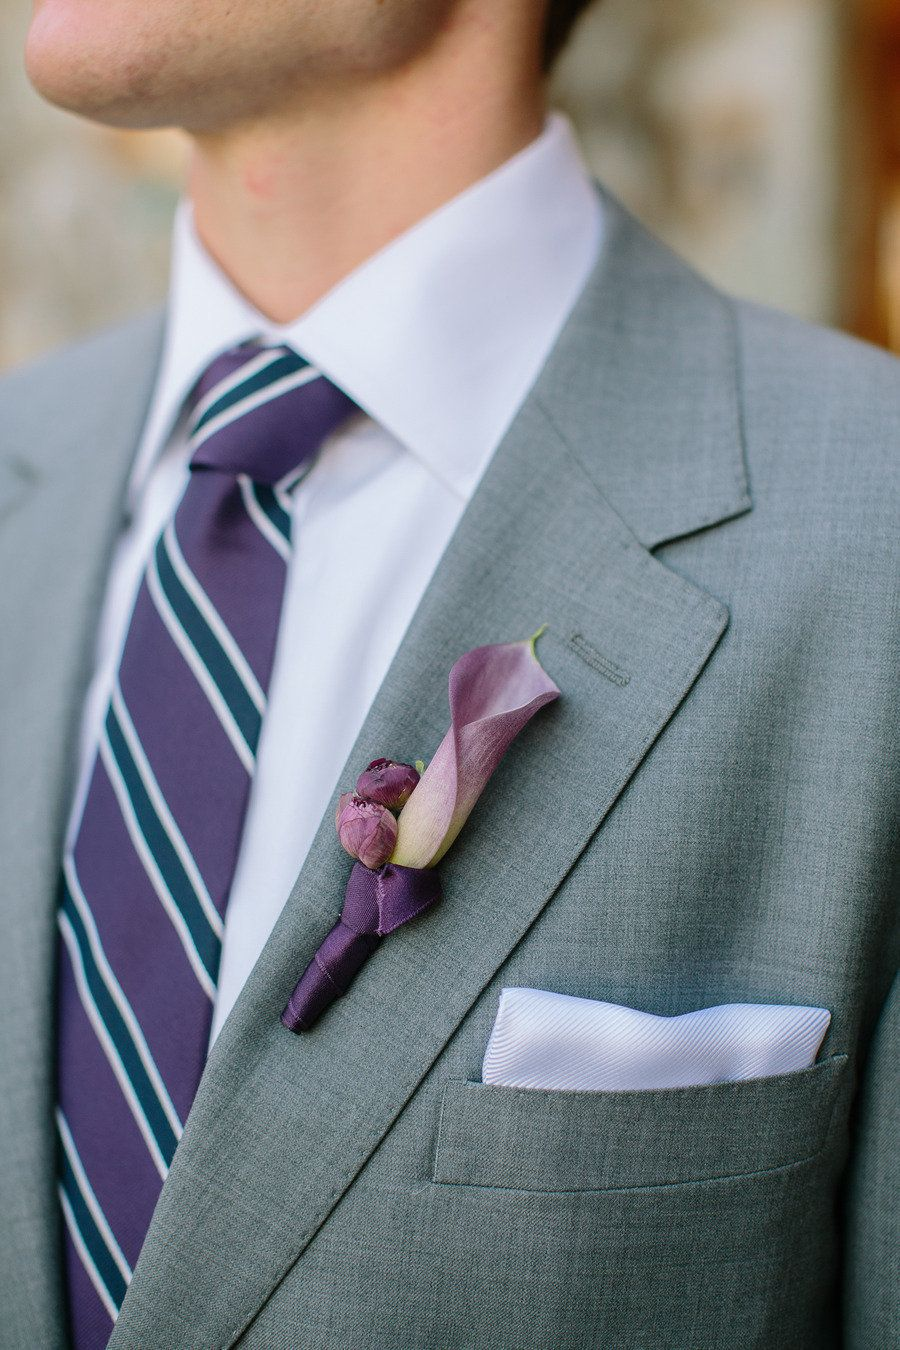 Calla Lily boutonniere - Sonoma Wedding from Briana Marie Photography